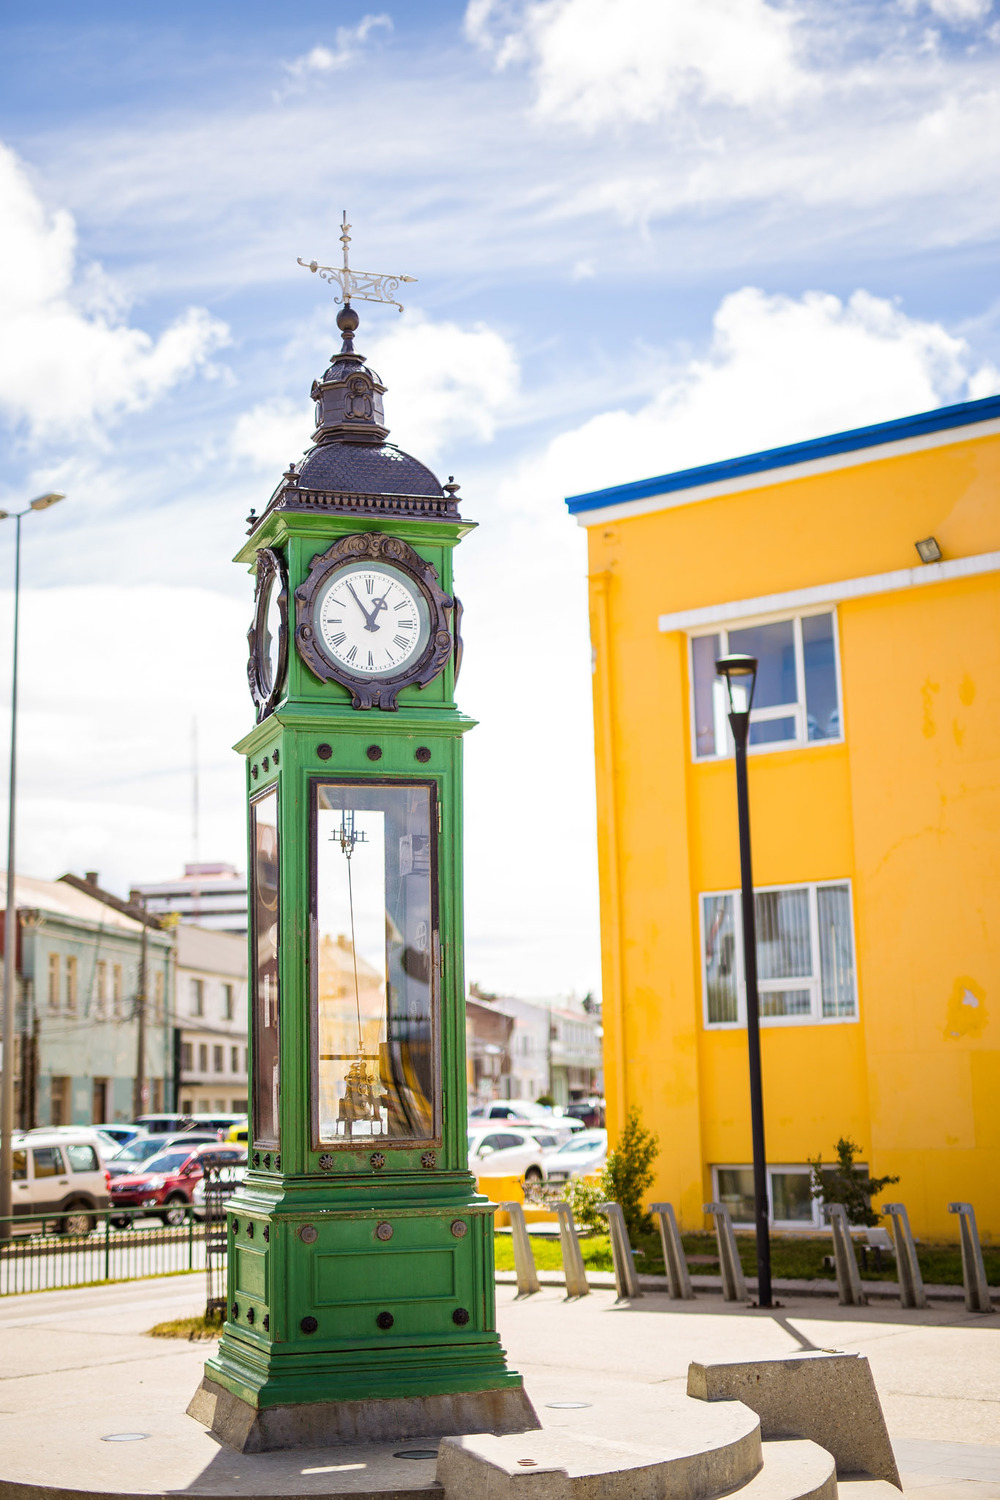 Wedding-Travellers-Destination-Wedding-Overlanding-Punta-Arenas-Chile-historic-clock-green